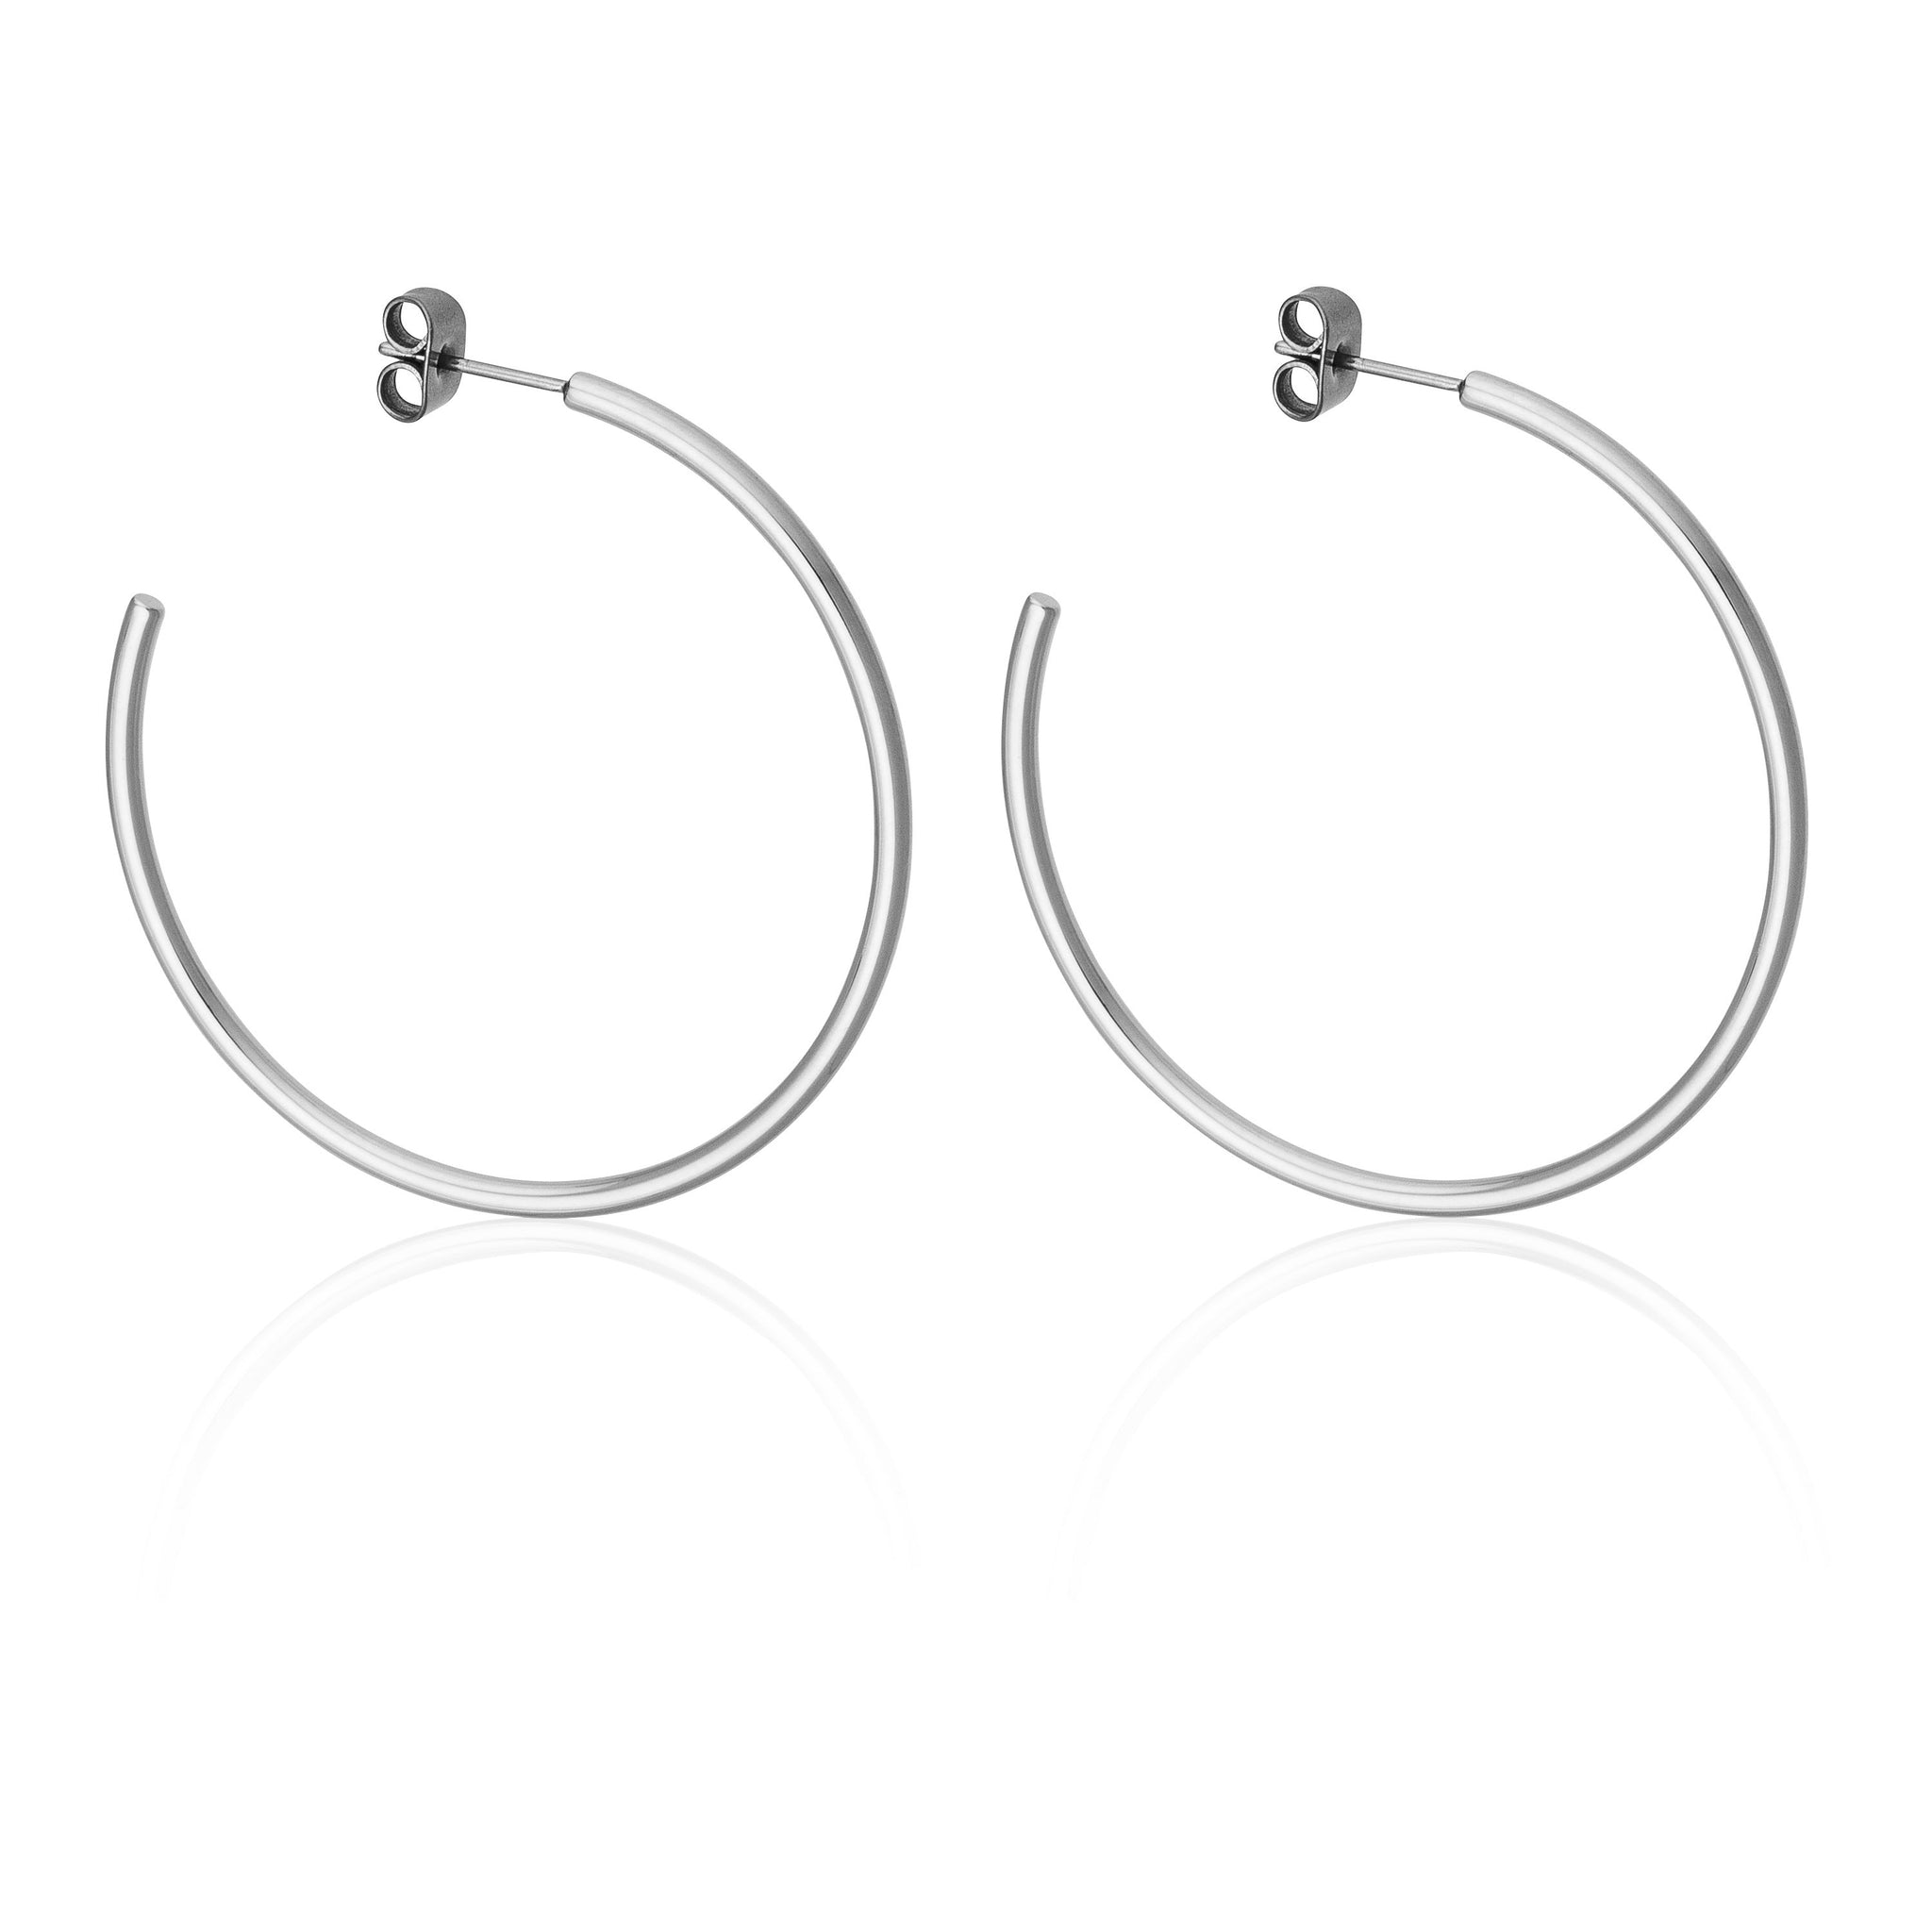 45MM SKINNY HOOPS | Earrings | Tini Lux